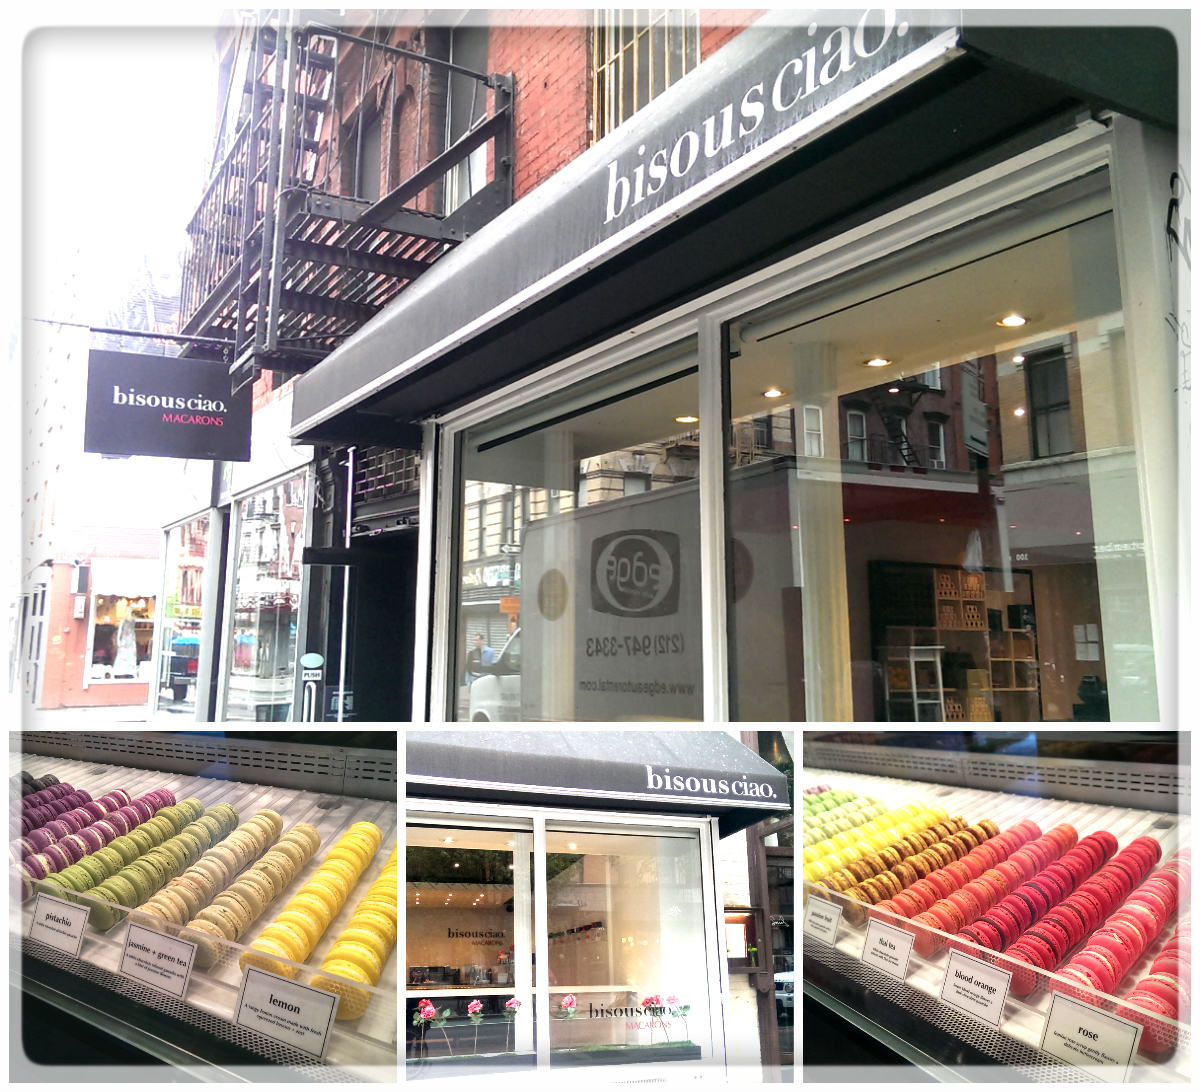 bisous ciao Macarons  101 Stanton St. New York, NY10002  This is where we visit when we want to indulge ourselves with a little treat. These little gems from bisous ciao are truly exquisite! Their macarons are all so delicate and heavenly delicious(I myself believe this is the best macaron!) It's not only tasty but also its so delicious to our eyes with lots of beautiful colors and makes you high when you enter the place! Our favorite flavors, Jasmine Green Tea and Rose always delight our coffee break. They also make a lovely gift for your special ones. It's only steps away from us, so try their macarons before or after shopping at Noi, 177 orchard st!